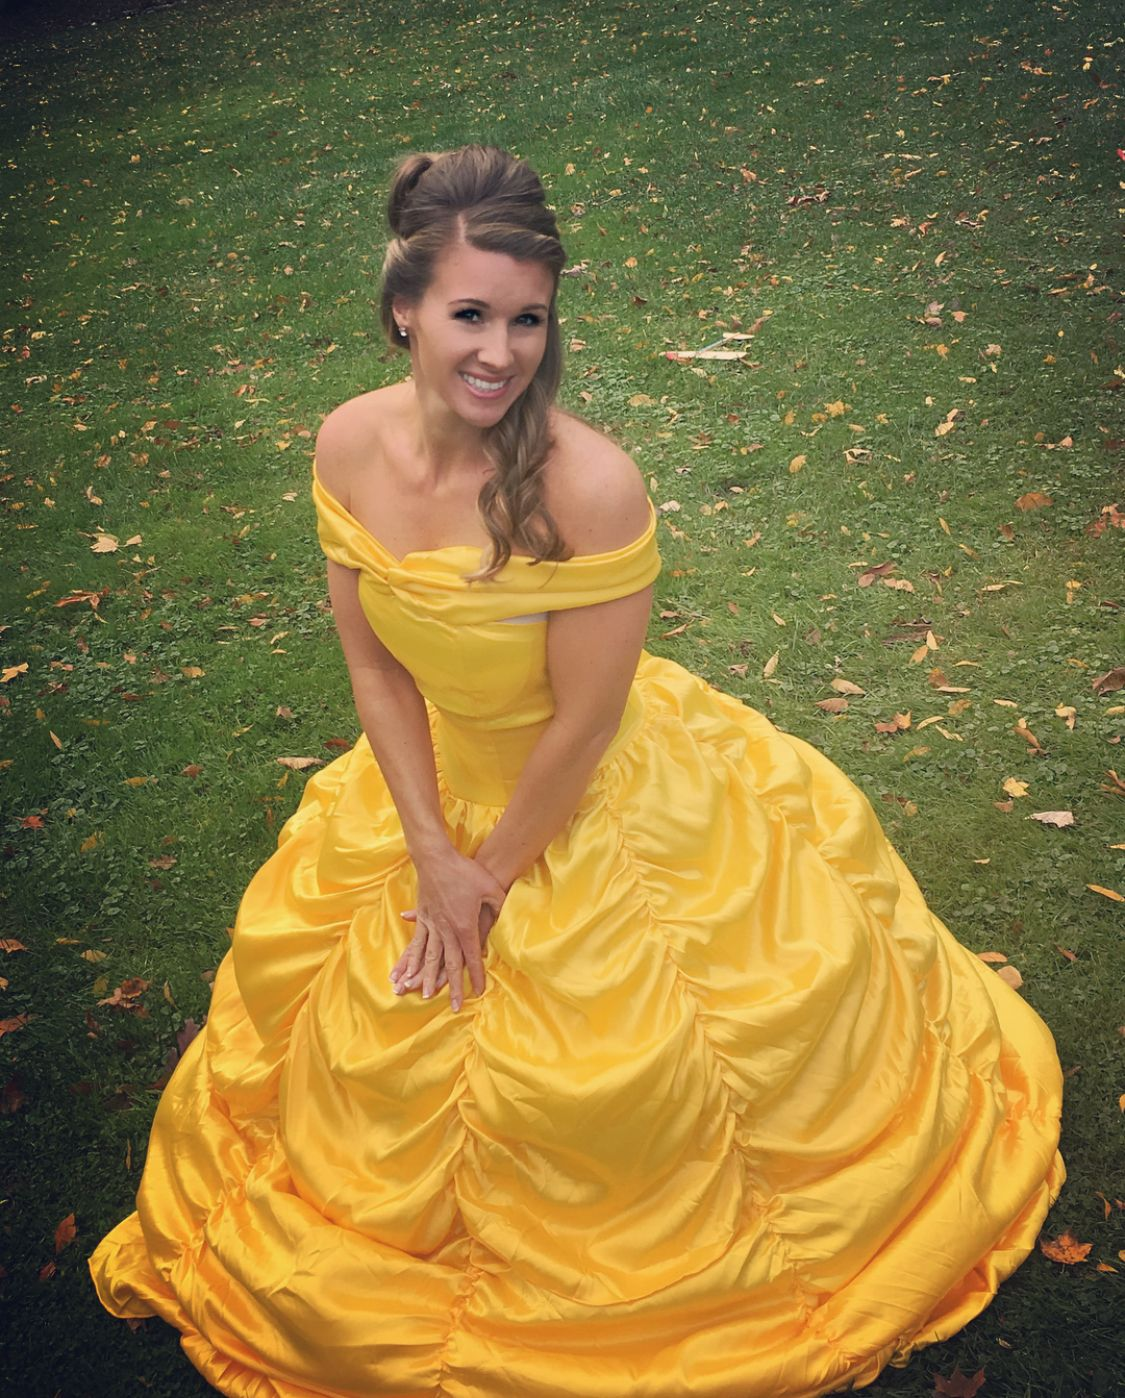 Adult women belle gown costume halloweenudparty time in